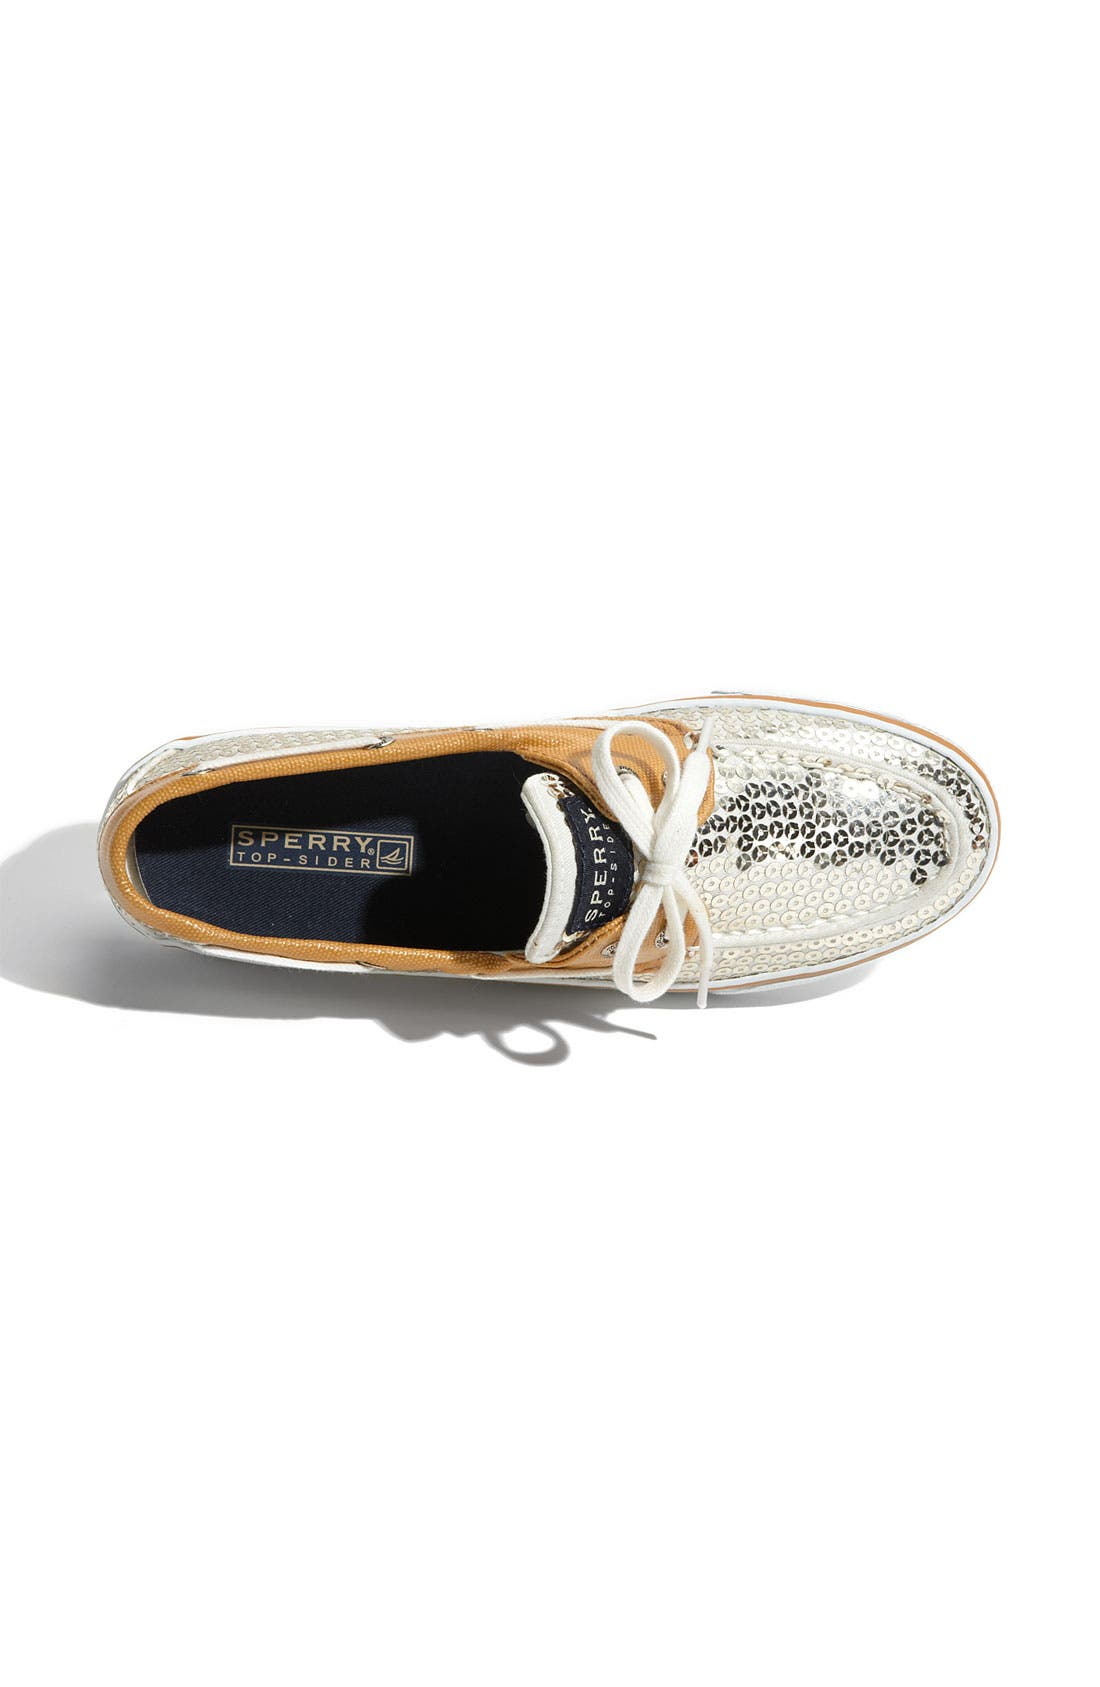 Top-Sider<sup>®</sup> 'Bahama' Sequined Boat Shoe,                             Alternate thumbnail 165, color,